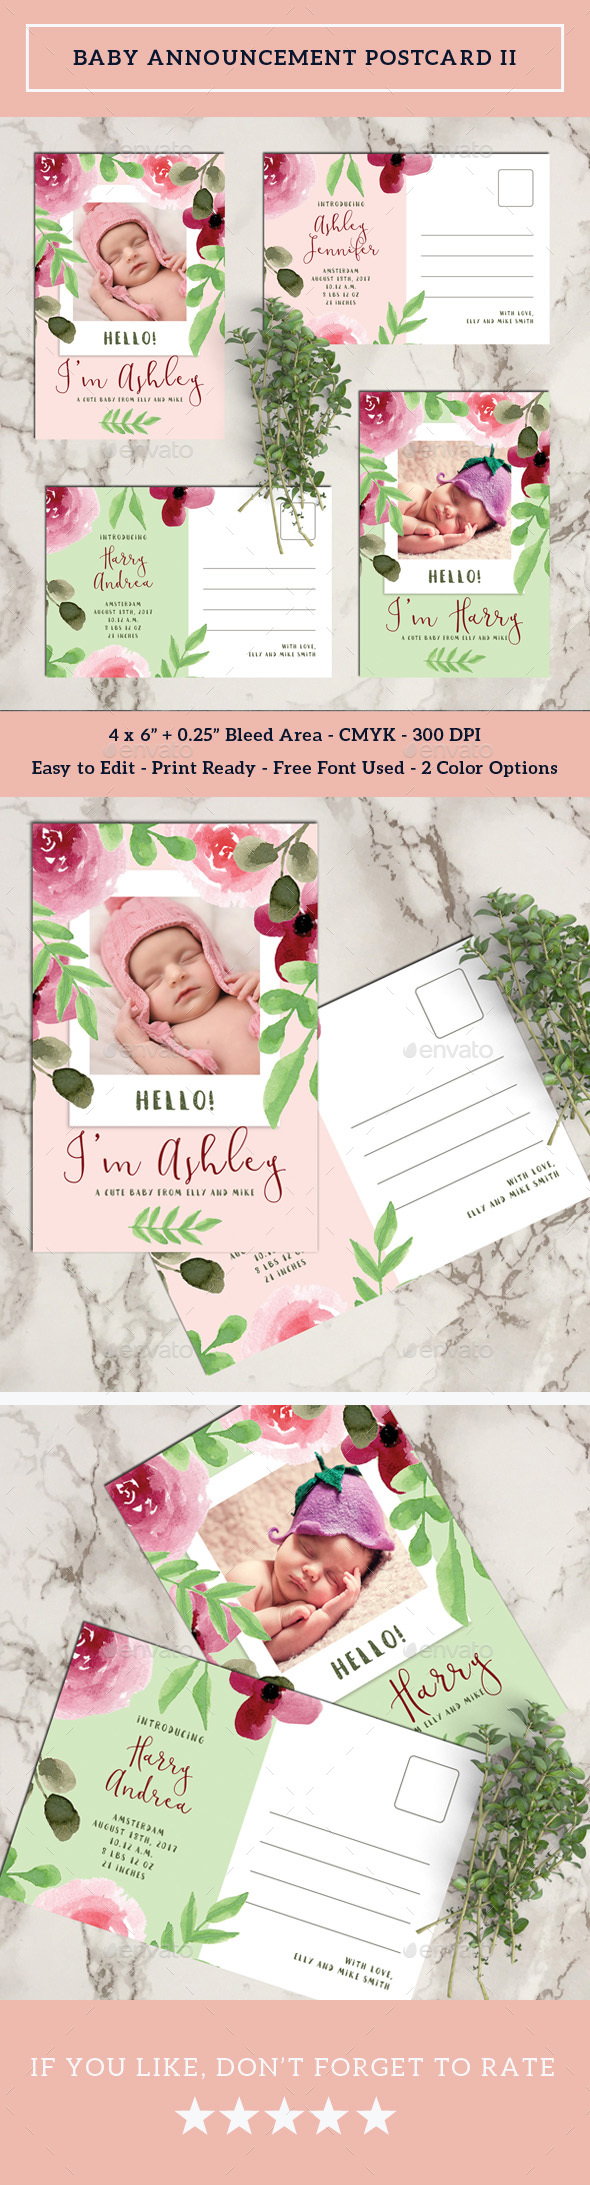 Baby Announcement Postcard II - Cards & Invites Print Templates